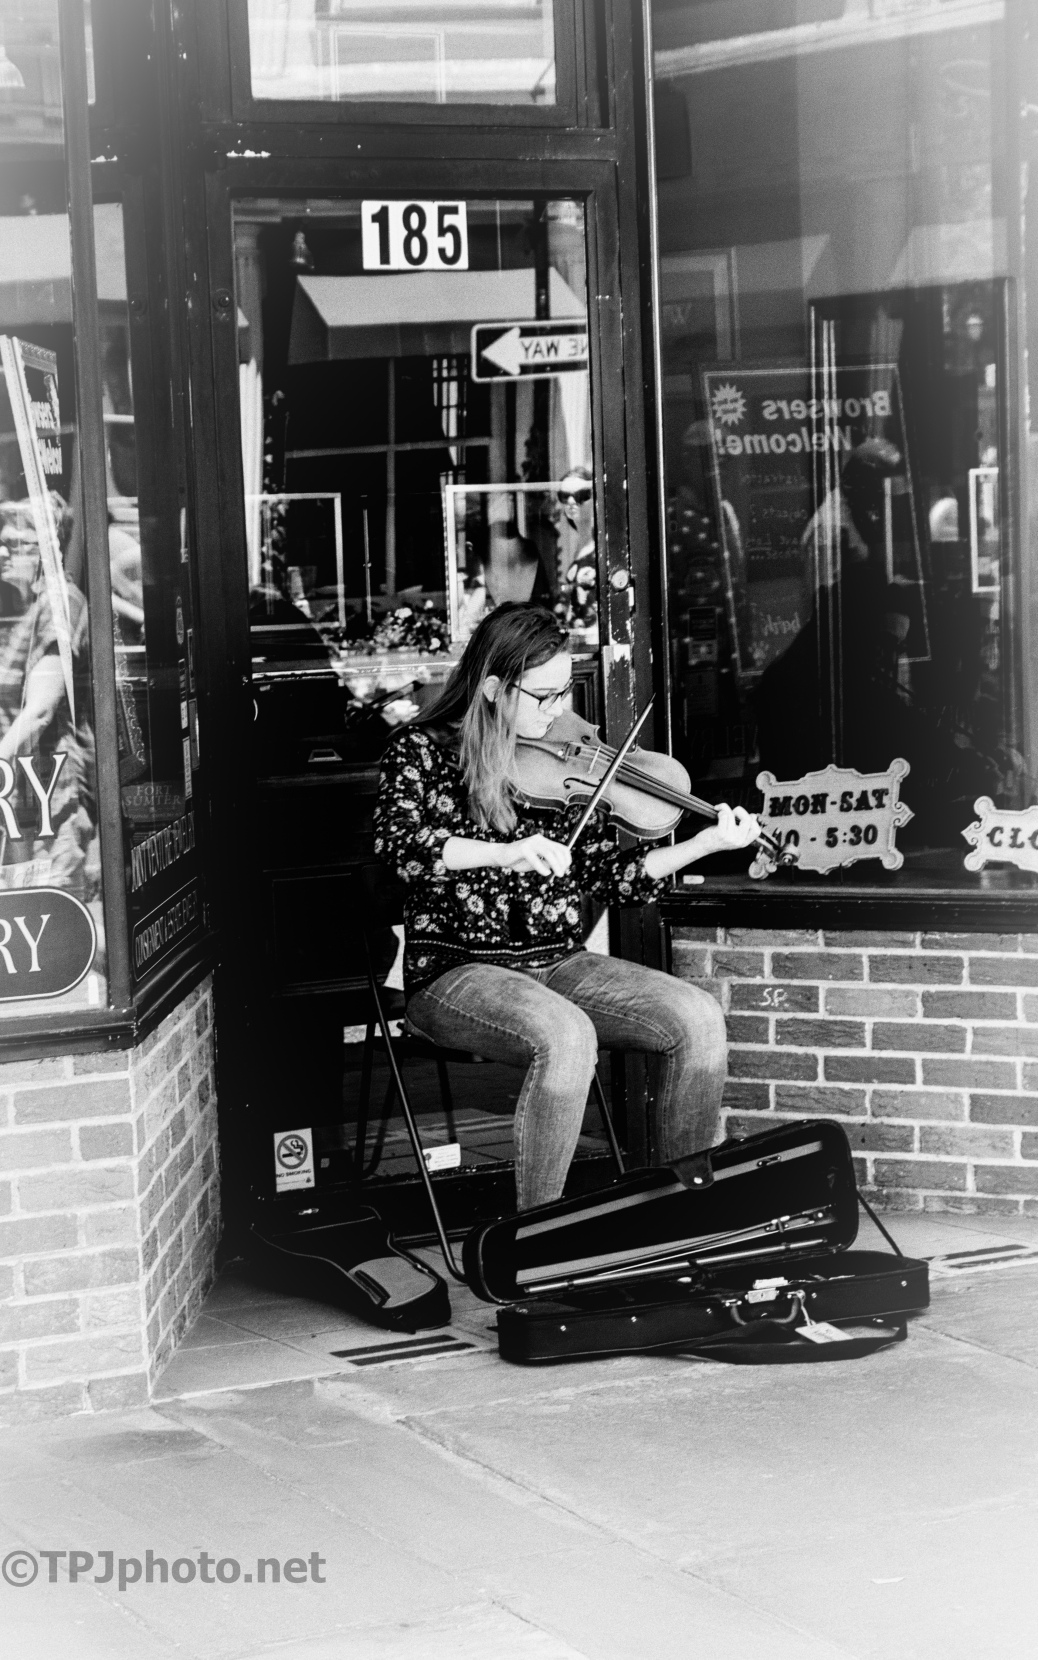 Street Music, Ilford ASA 400 Film Filter - click to enlarge